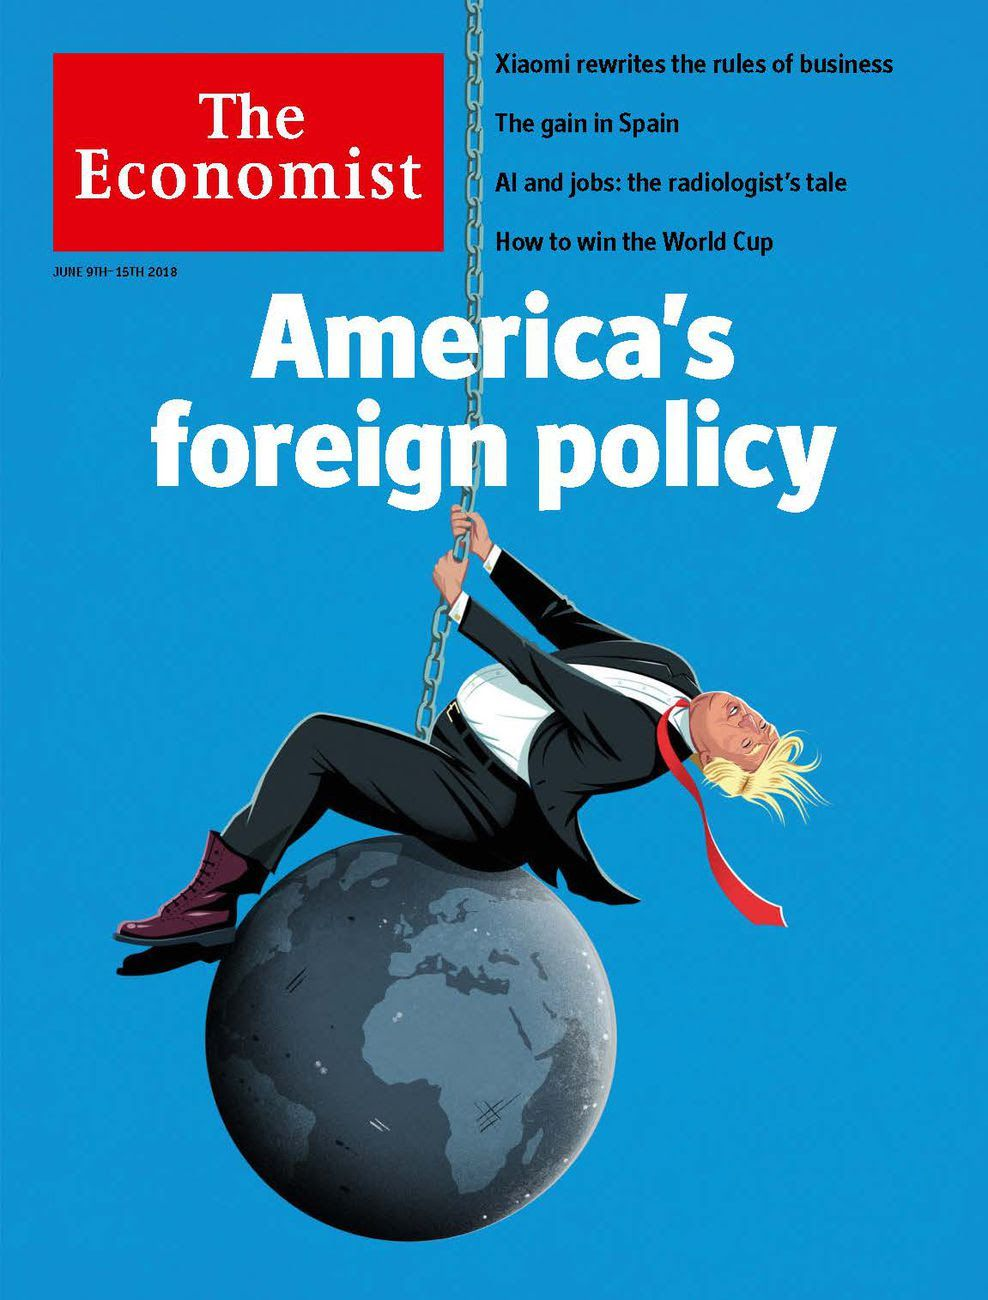 Illustration on The Economist cover of Trump riding a wrecking ball